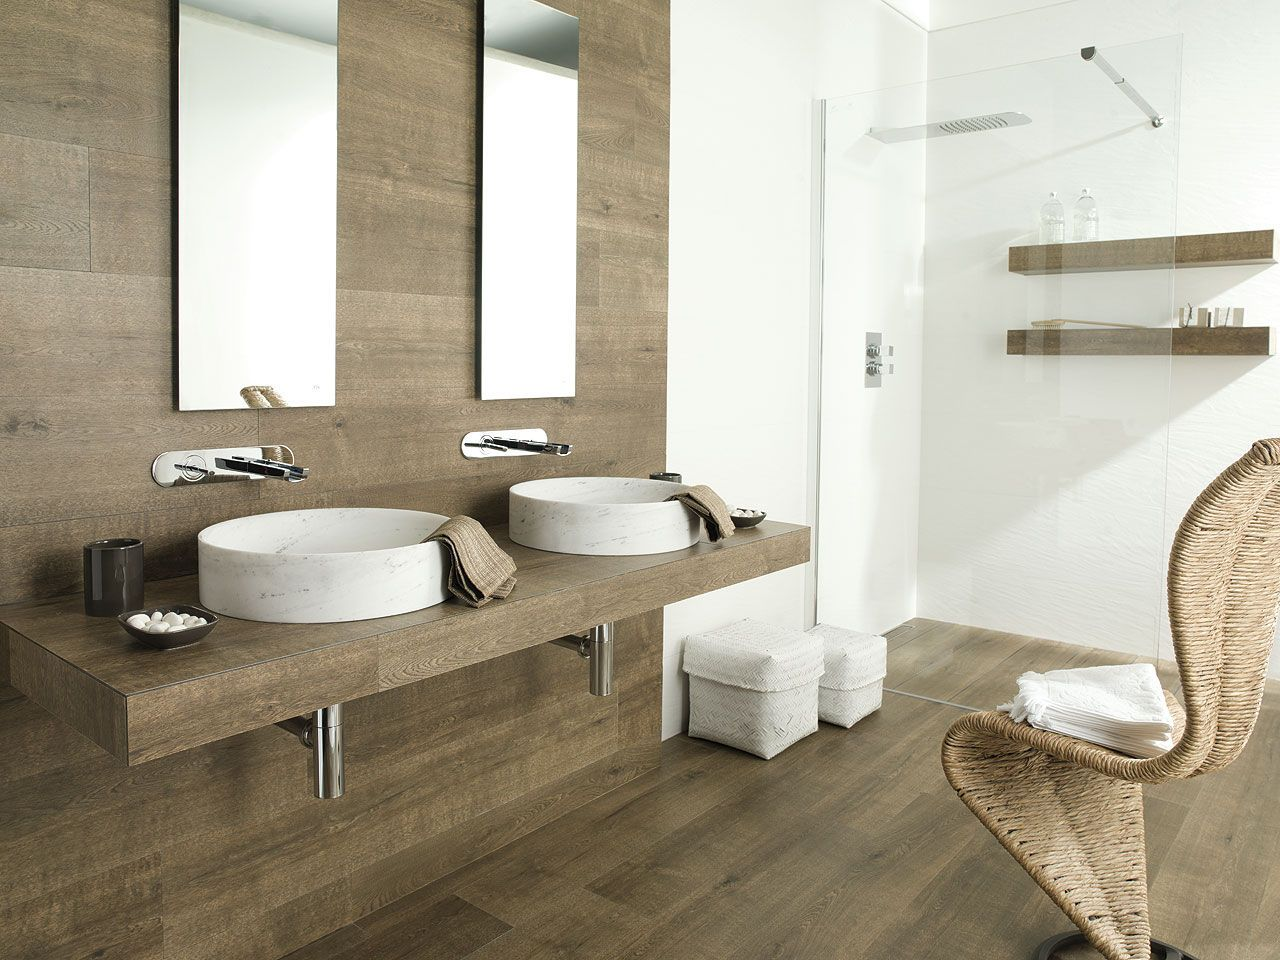 MLN Bathroom Tile Ideas Material Pinterest Tile Bathroom - Slip resistant bathroom floor tiles for bathroom decor ideas